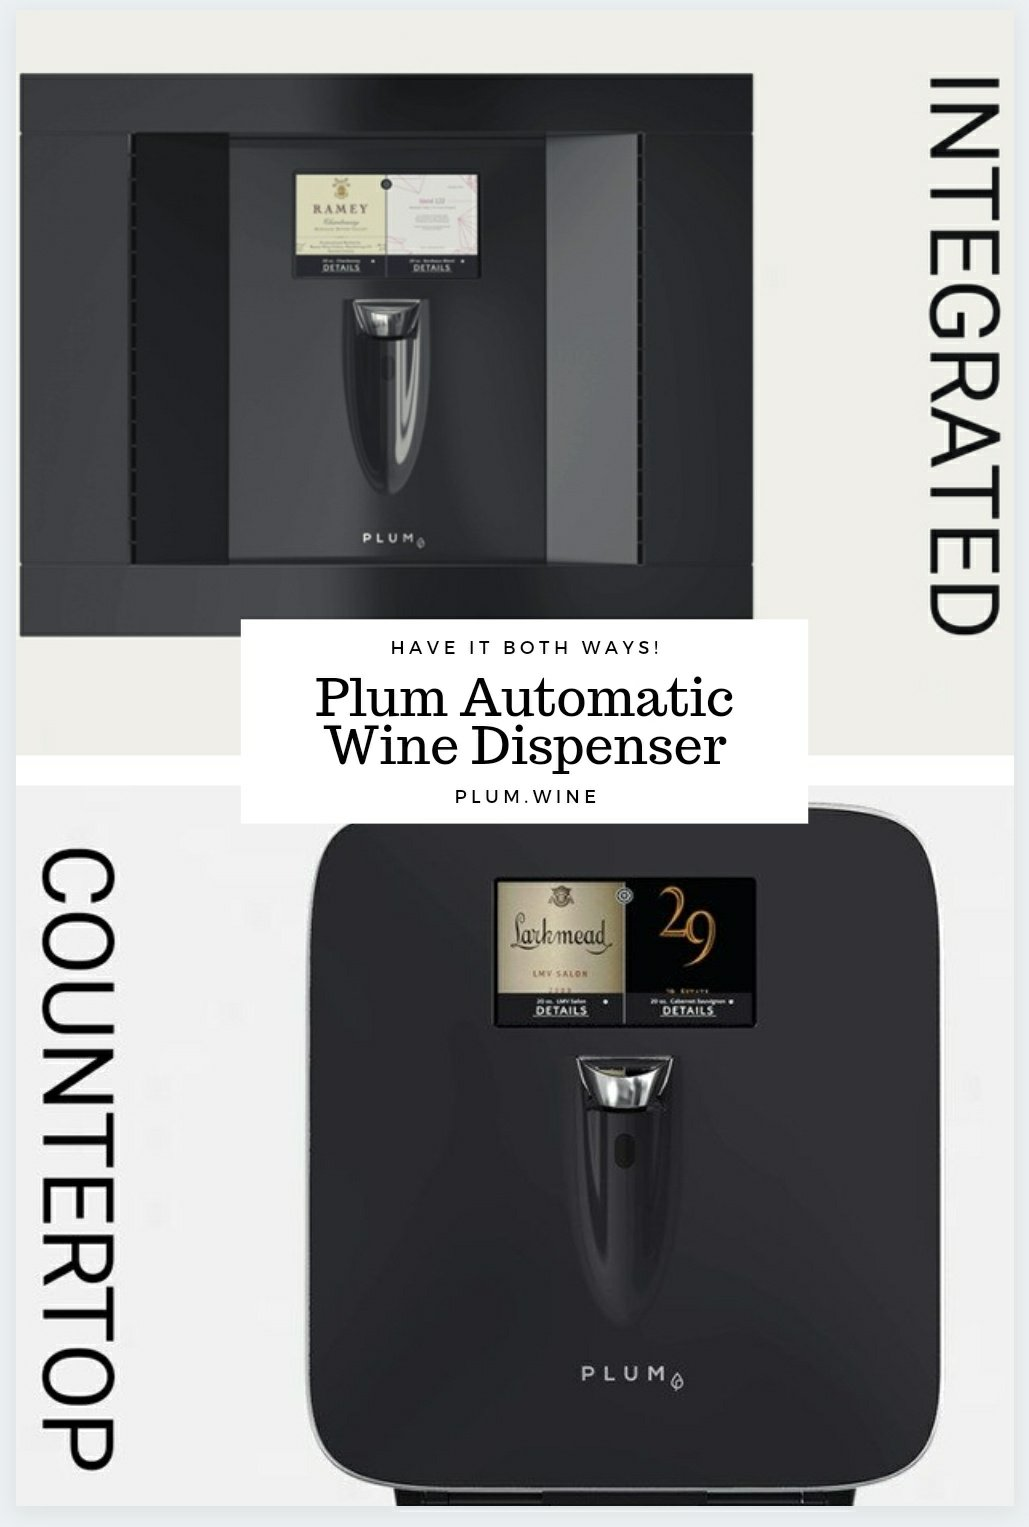 Countertop and Integrated PLUM elevates your wine experience - on The Pillow Goddess blog